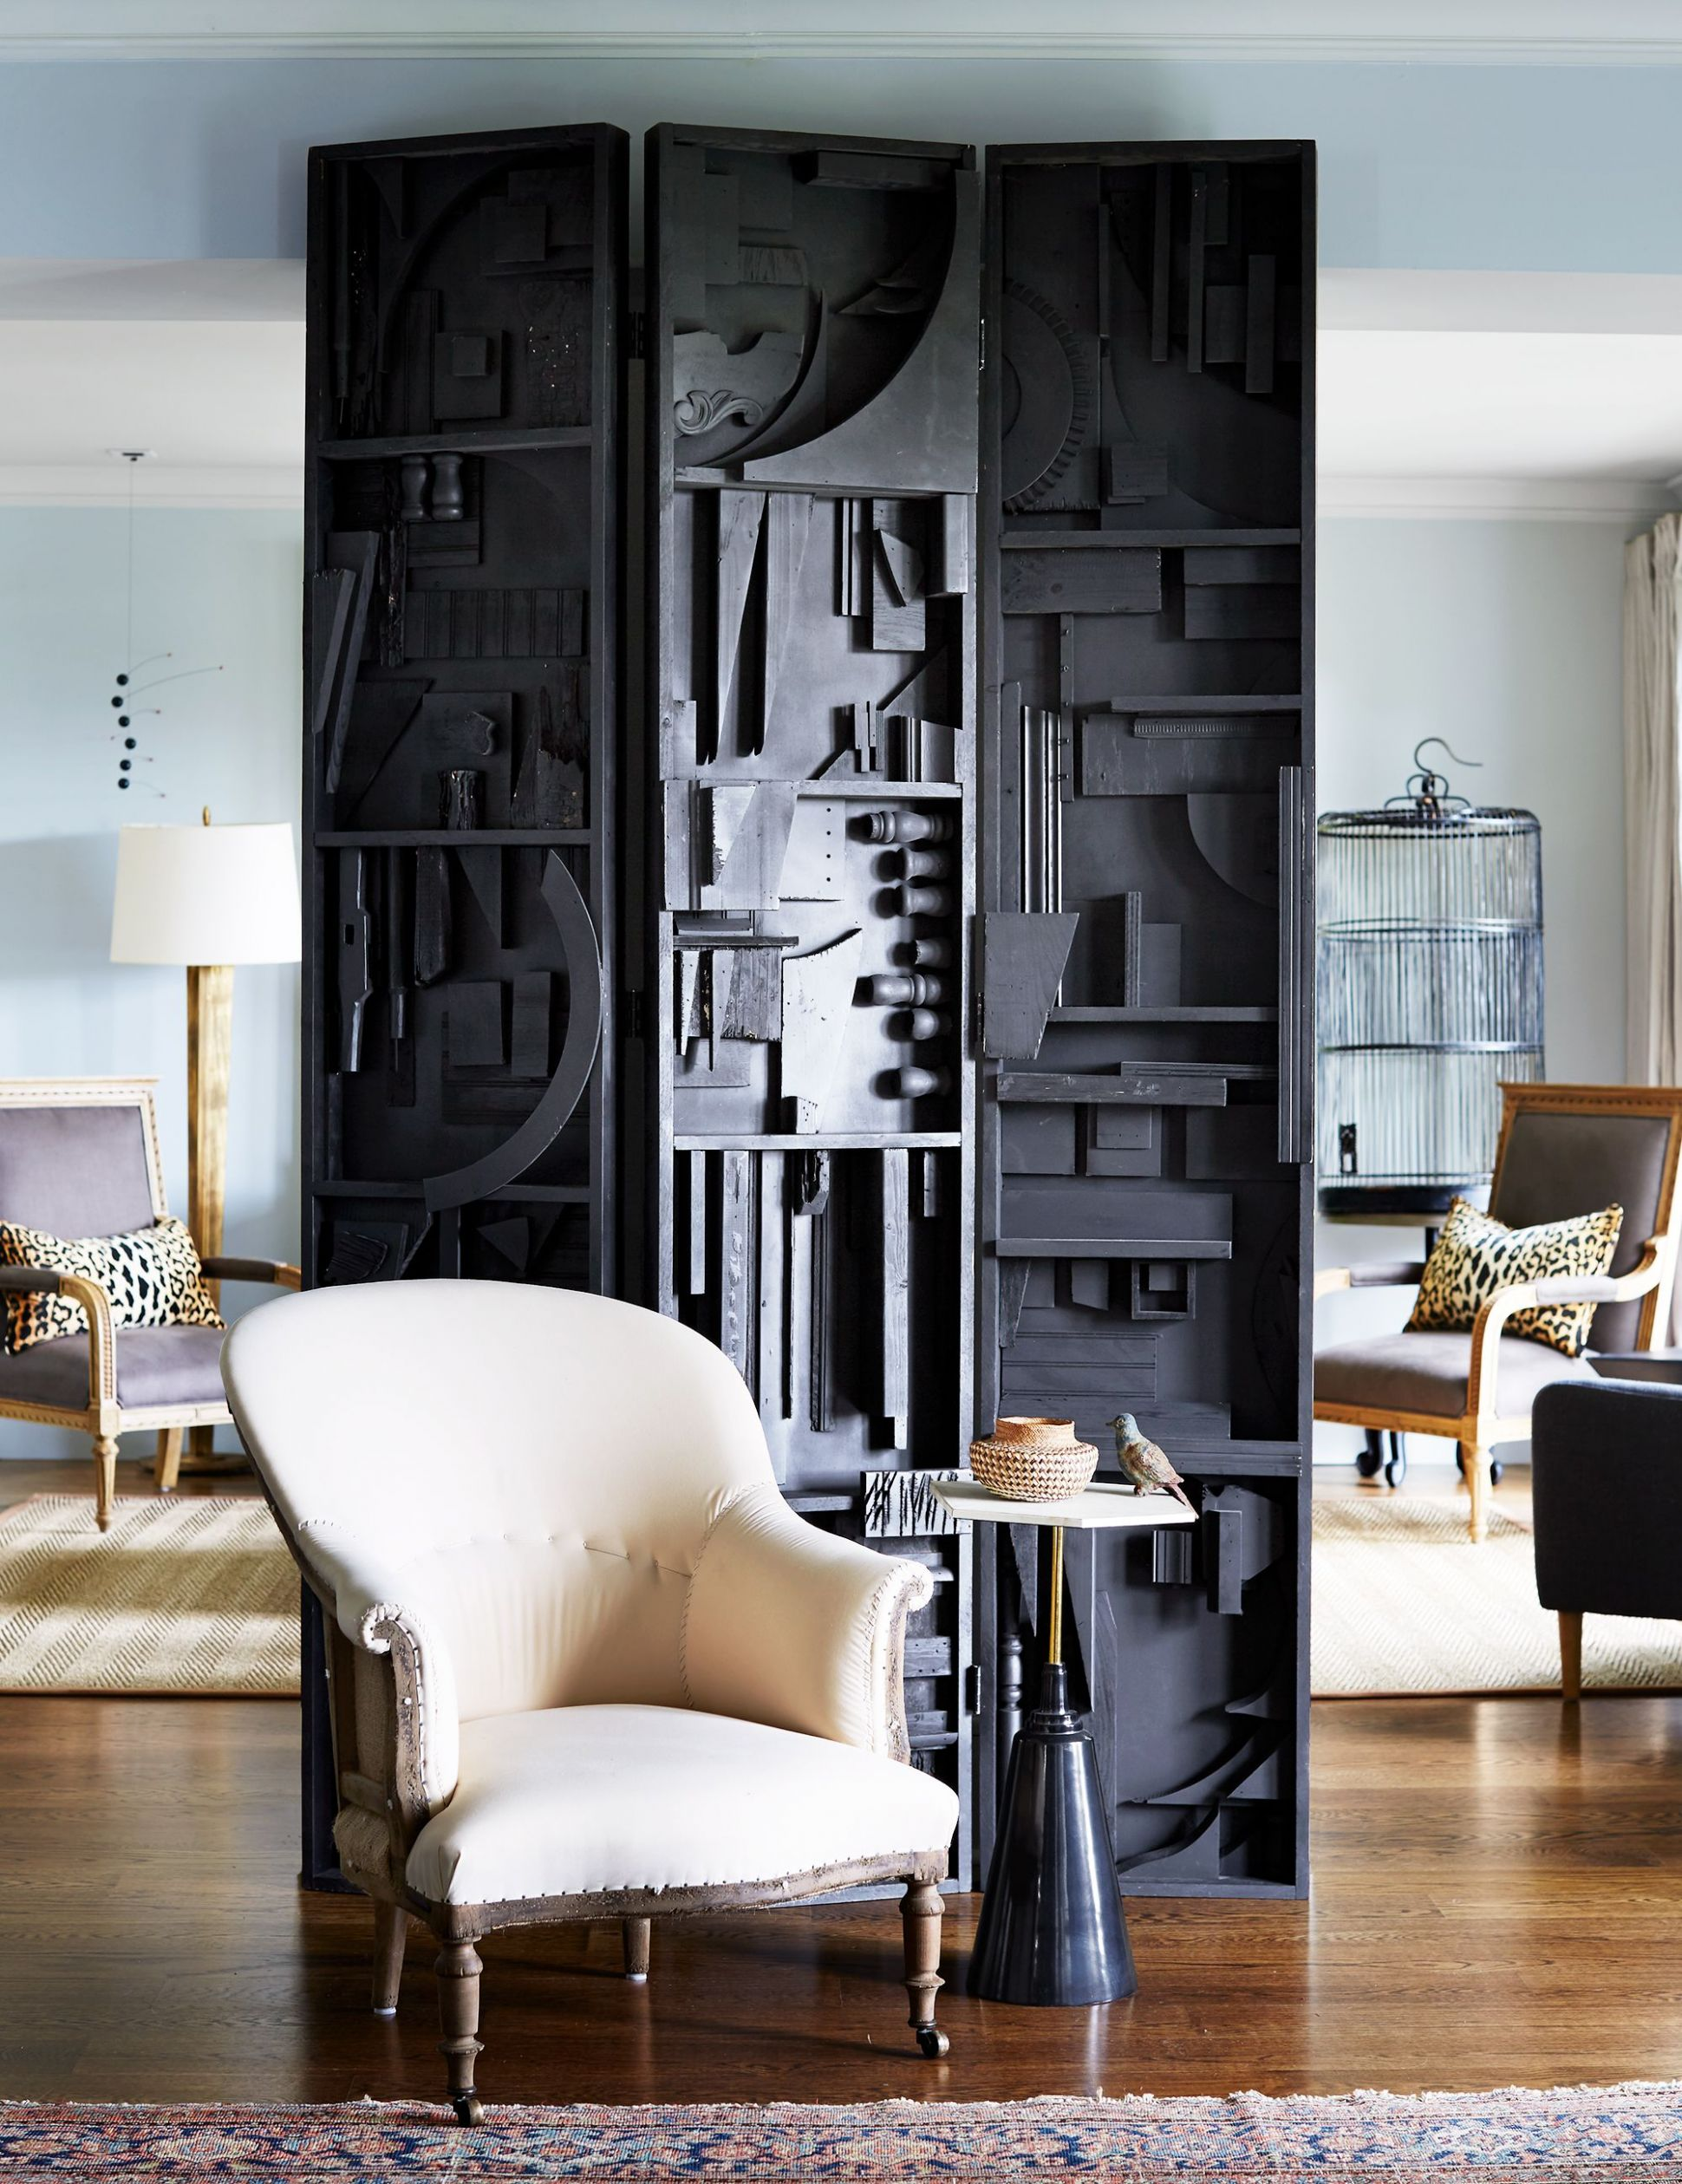 9+ Clever Room Divider Ideas - Folding Screen and Wall Partition ...